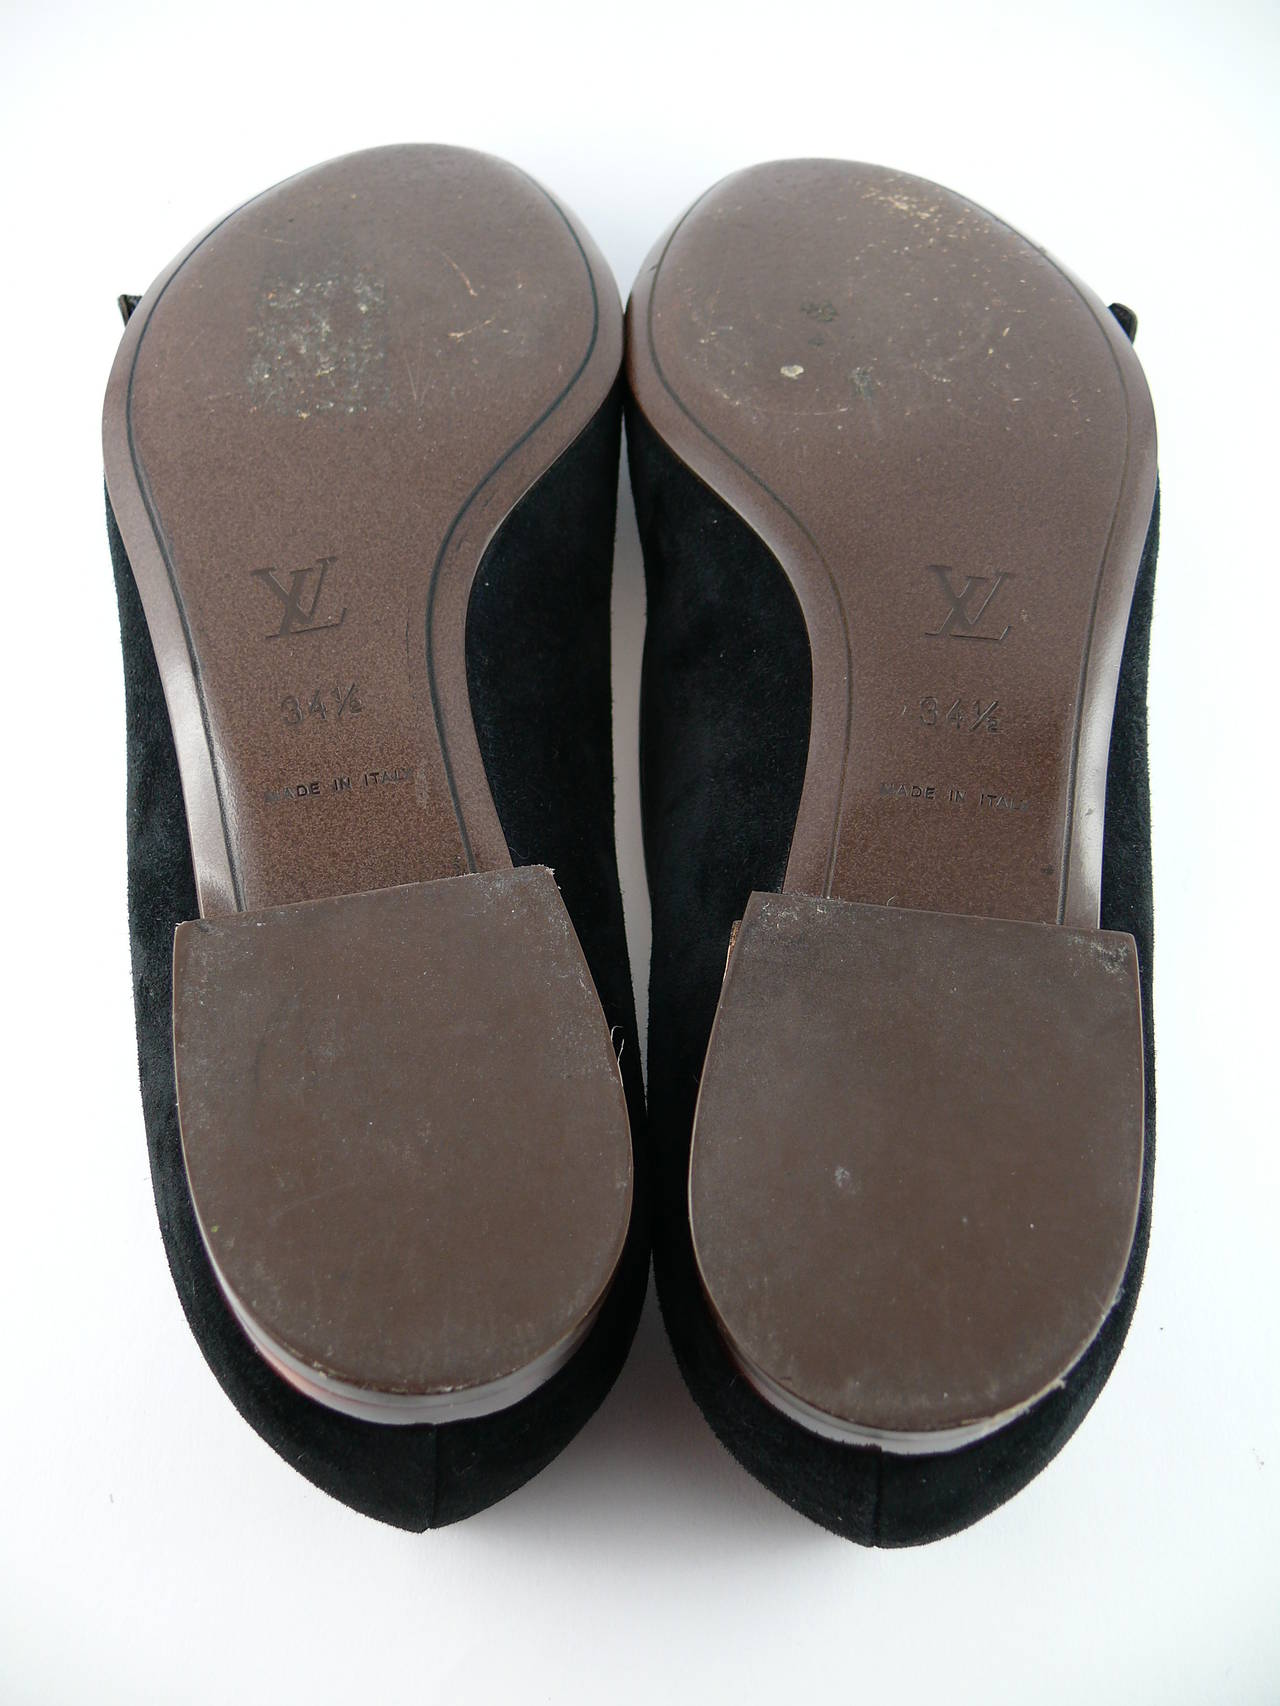 Louis Vuitton Black Suede and Resin Flower Ballet Flat IT 34 1/2 - US 5 1/2 For Sale 4